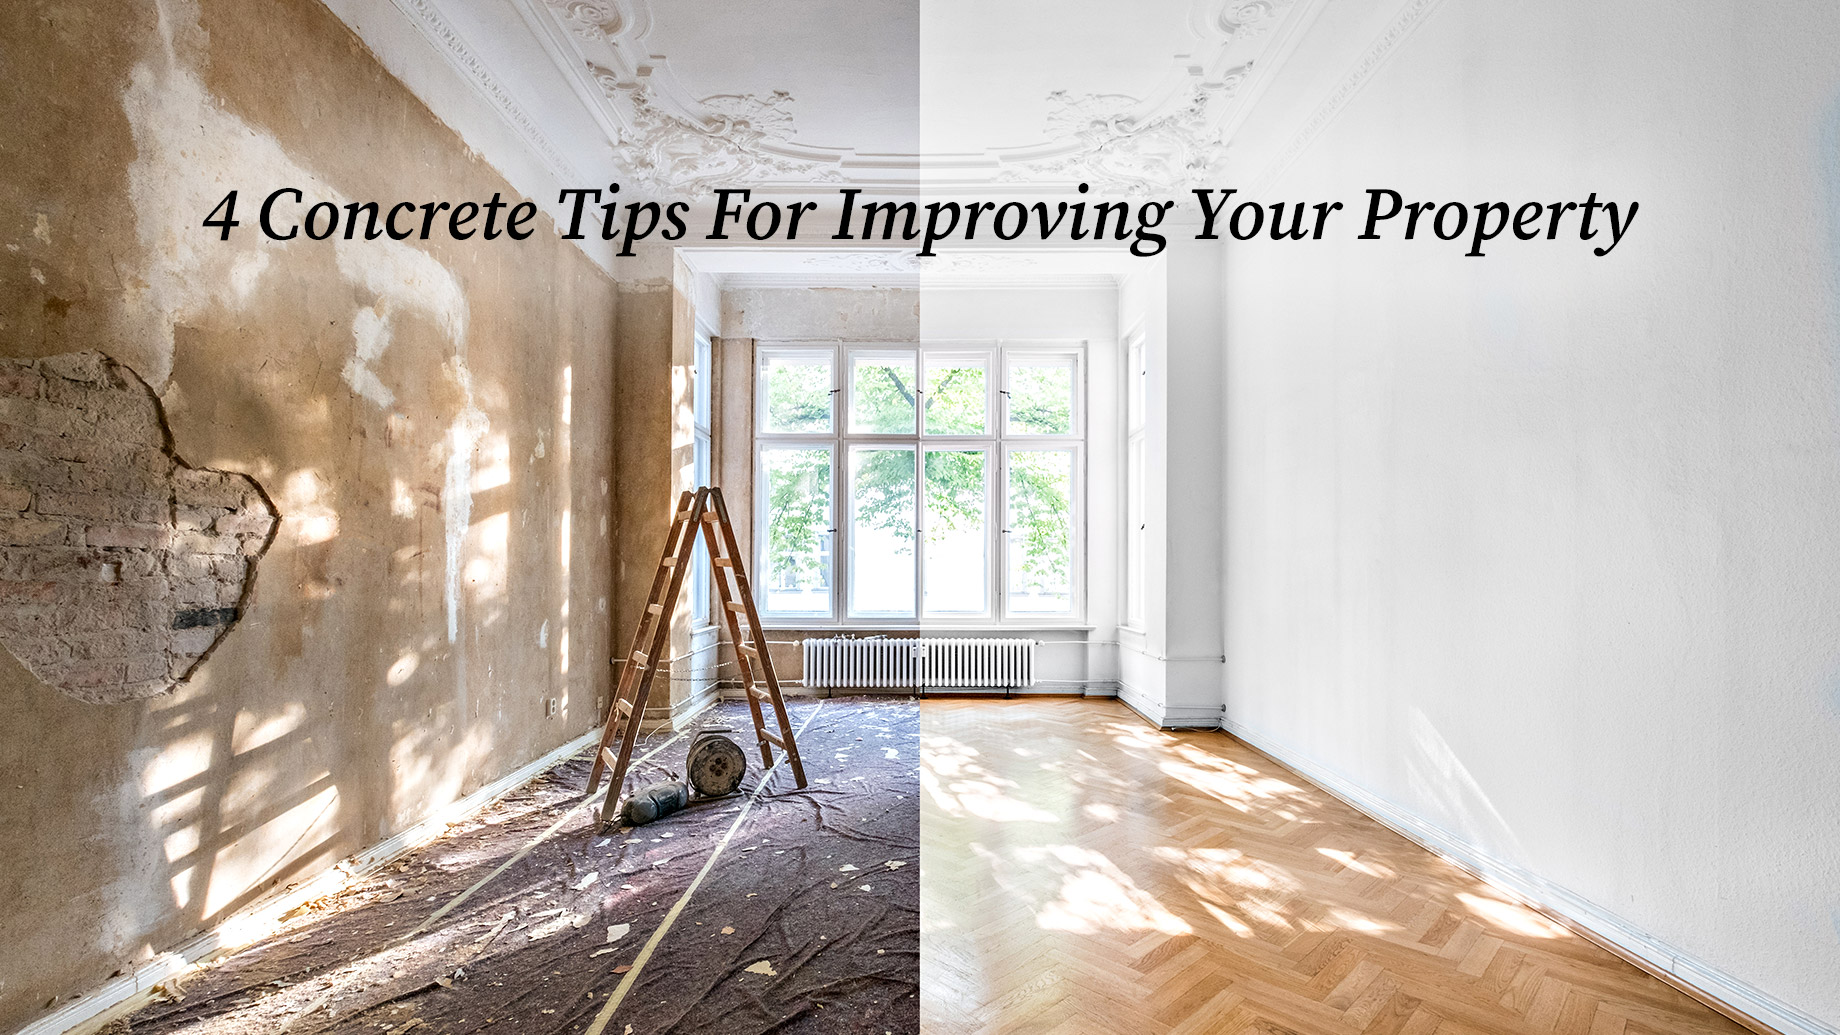 4 Concrete Tips For Improving Your Property